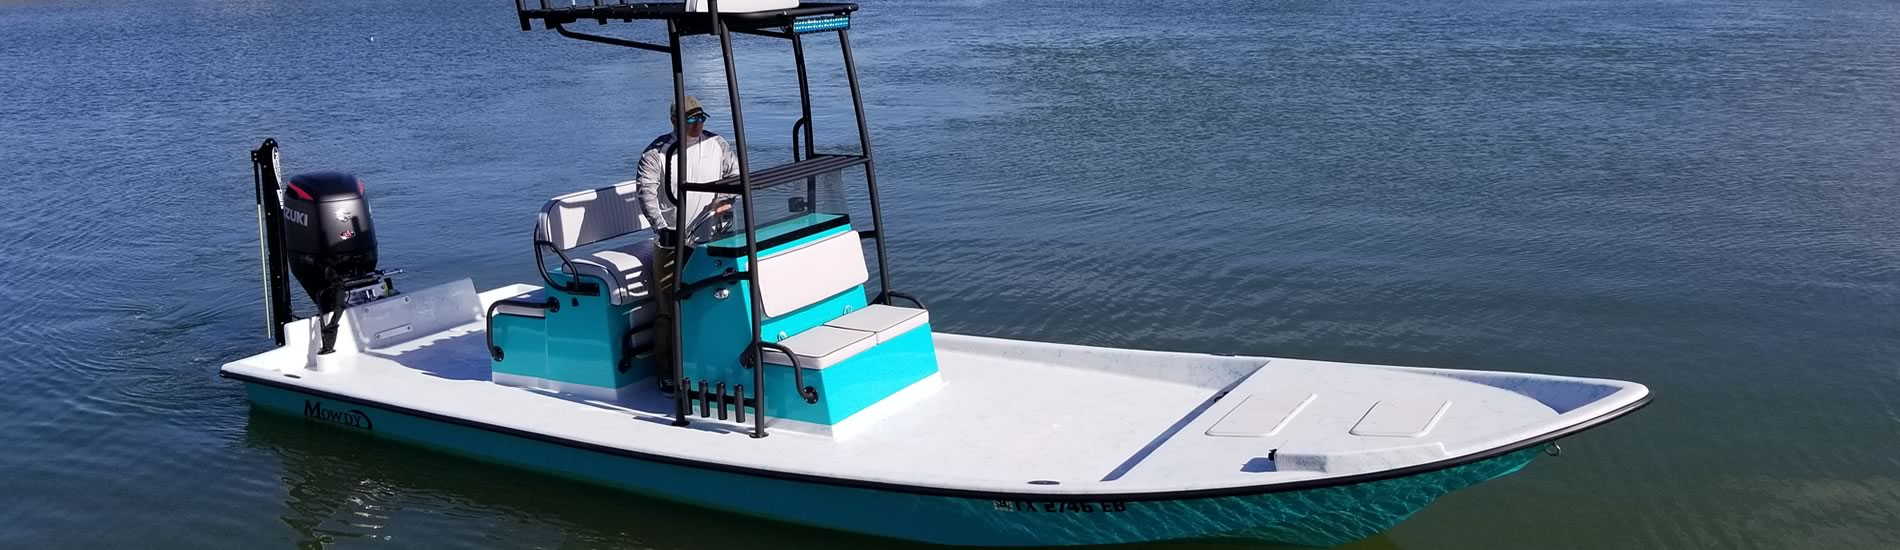 Shallow Water Boats >> Mowdy Boats Shallow Water Offshore Fishing Boats